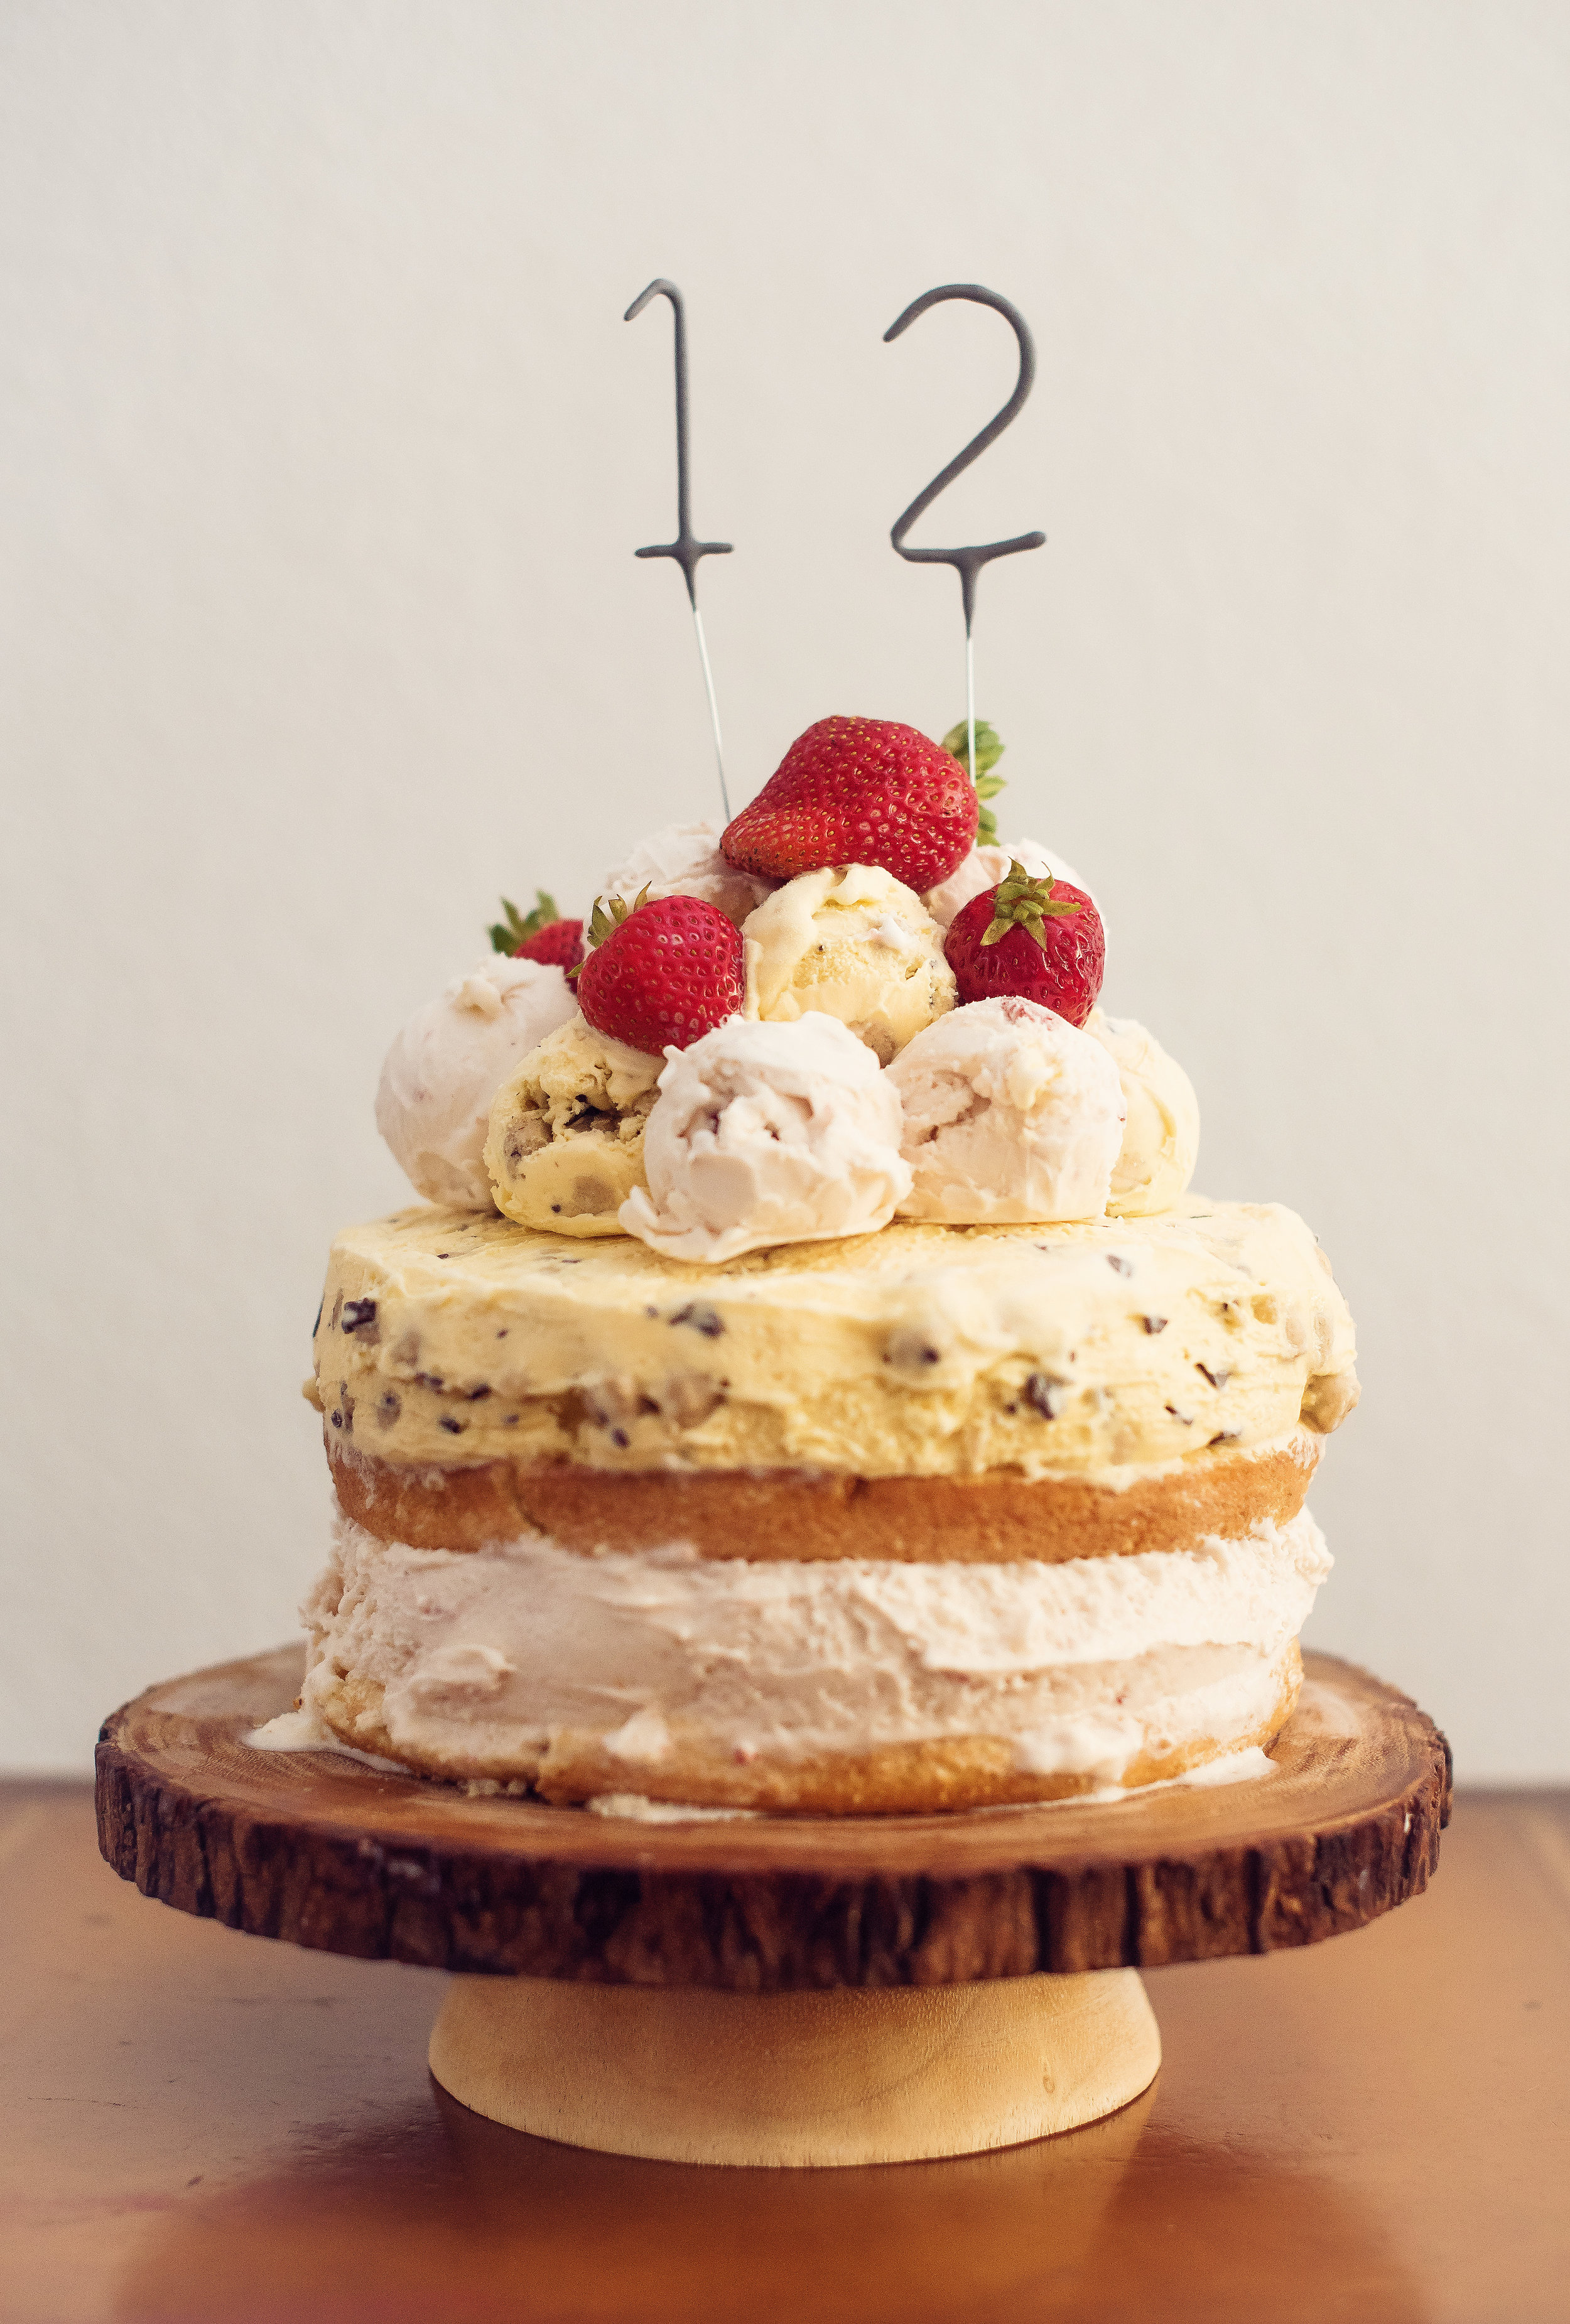 simple ice cream cake - lovely matters lifestyle blog - heather walker photography